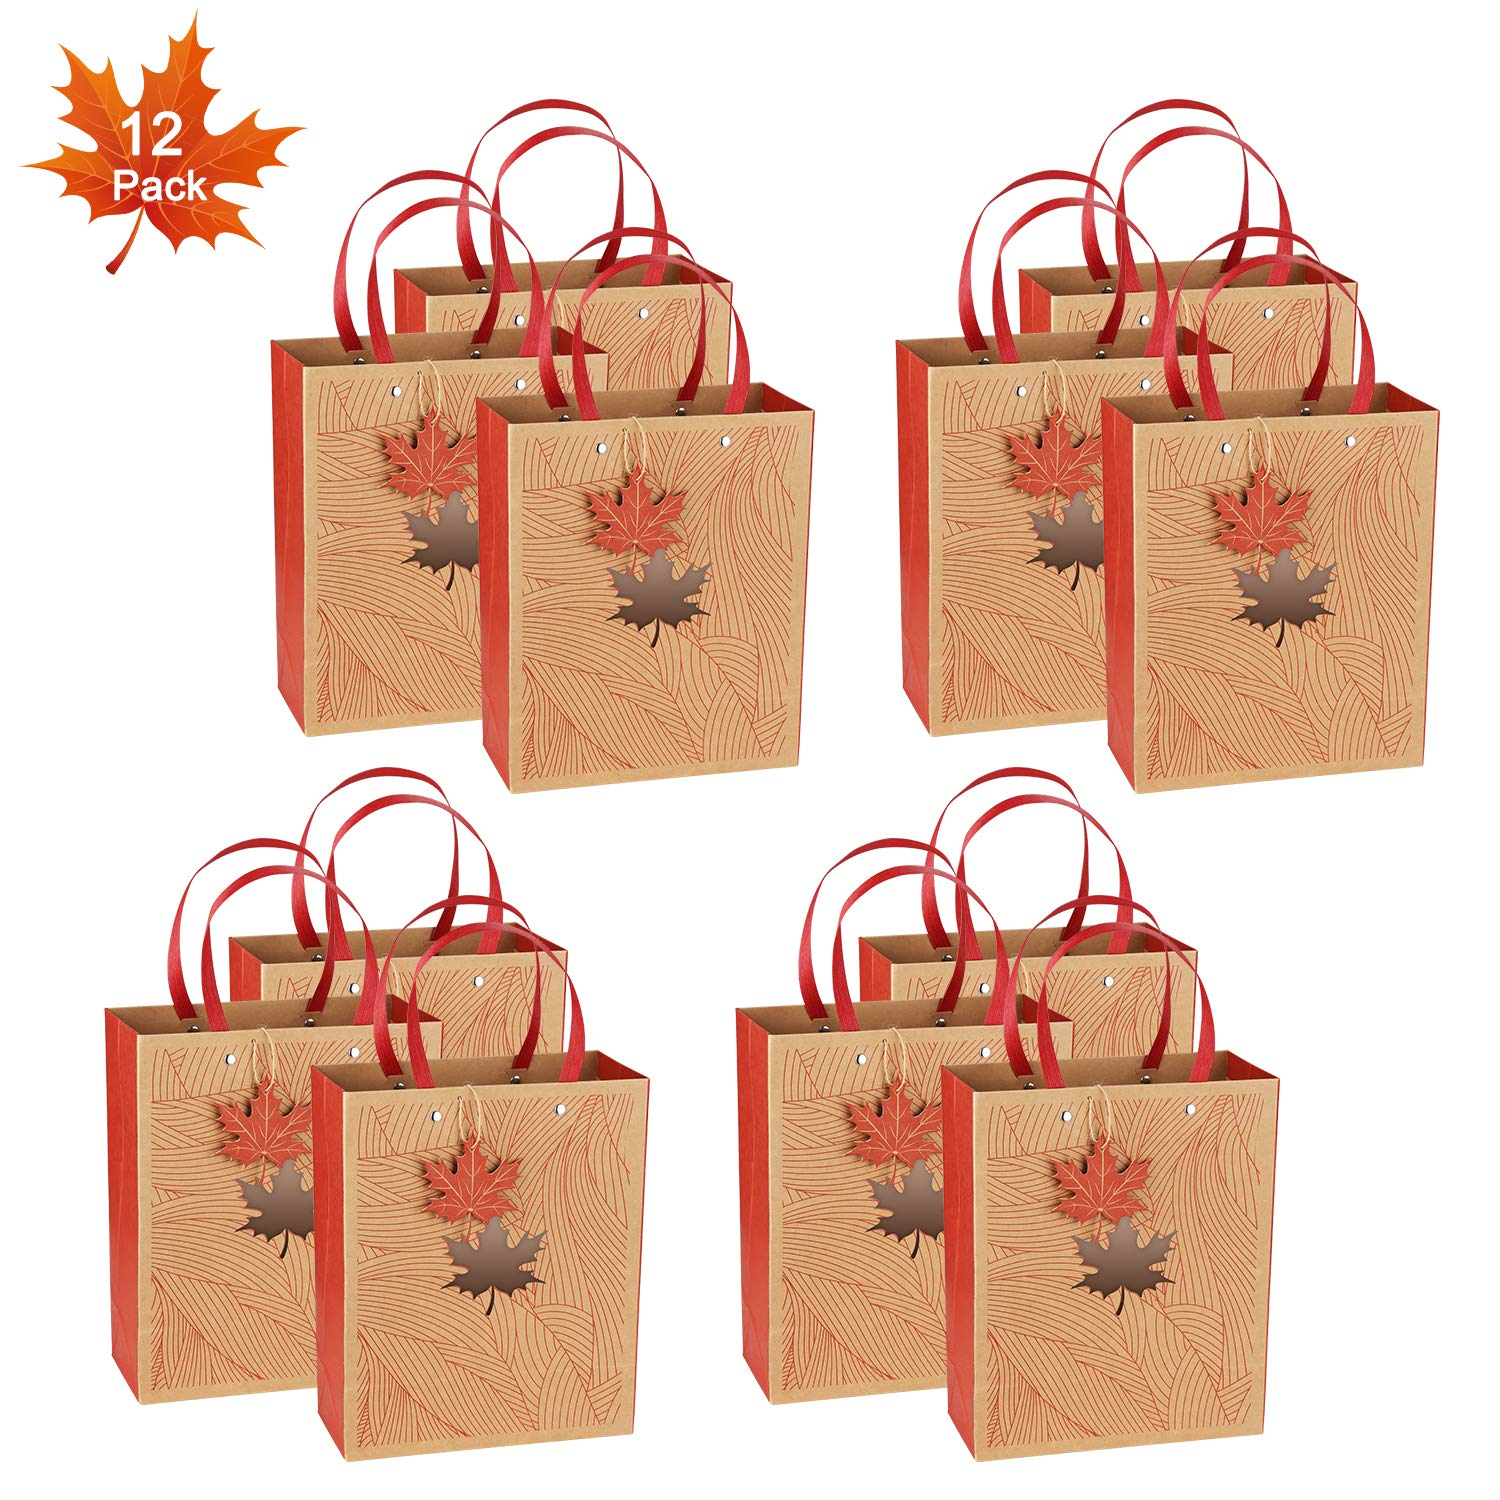 Gift Wrap Bags, Kraft Paper Gift Bags with Handles by OceLander for Shopping, Birthday, Weddings and Holiday Presents, Set of 12 Pack Medium Size 10.6x8.6x4.25 inches